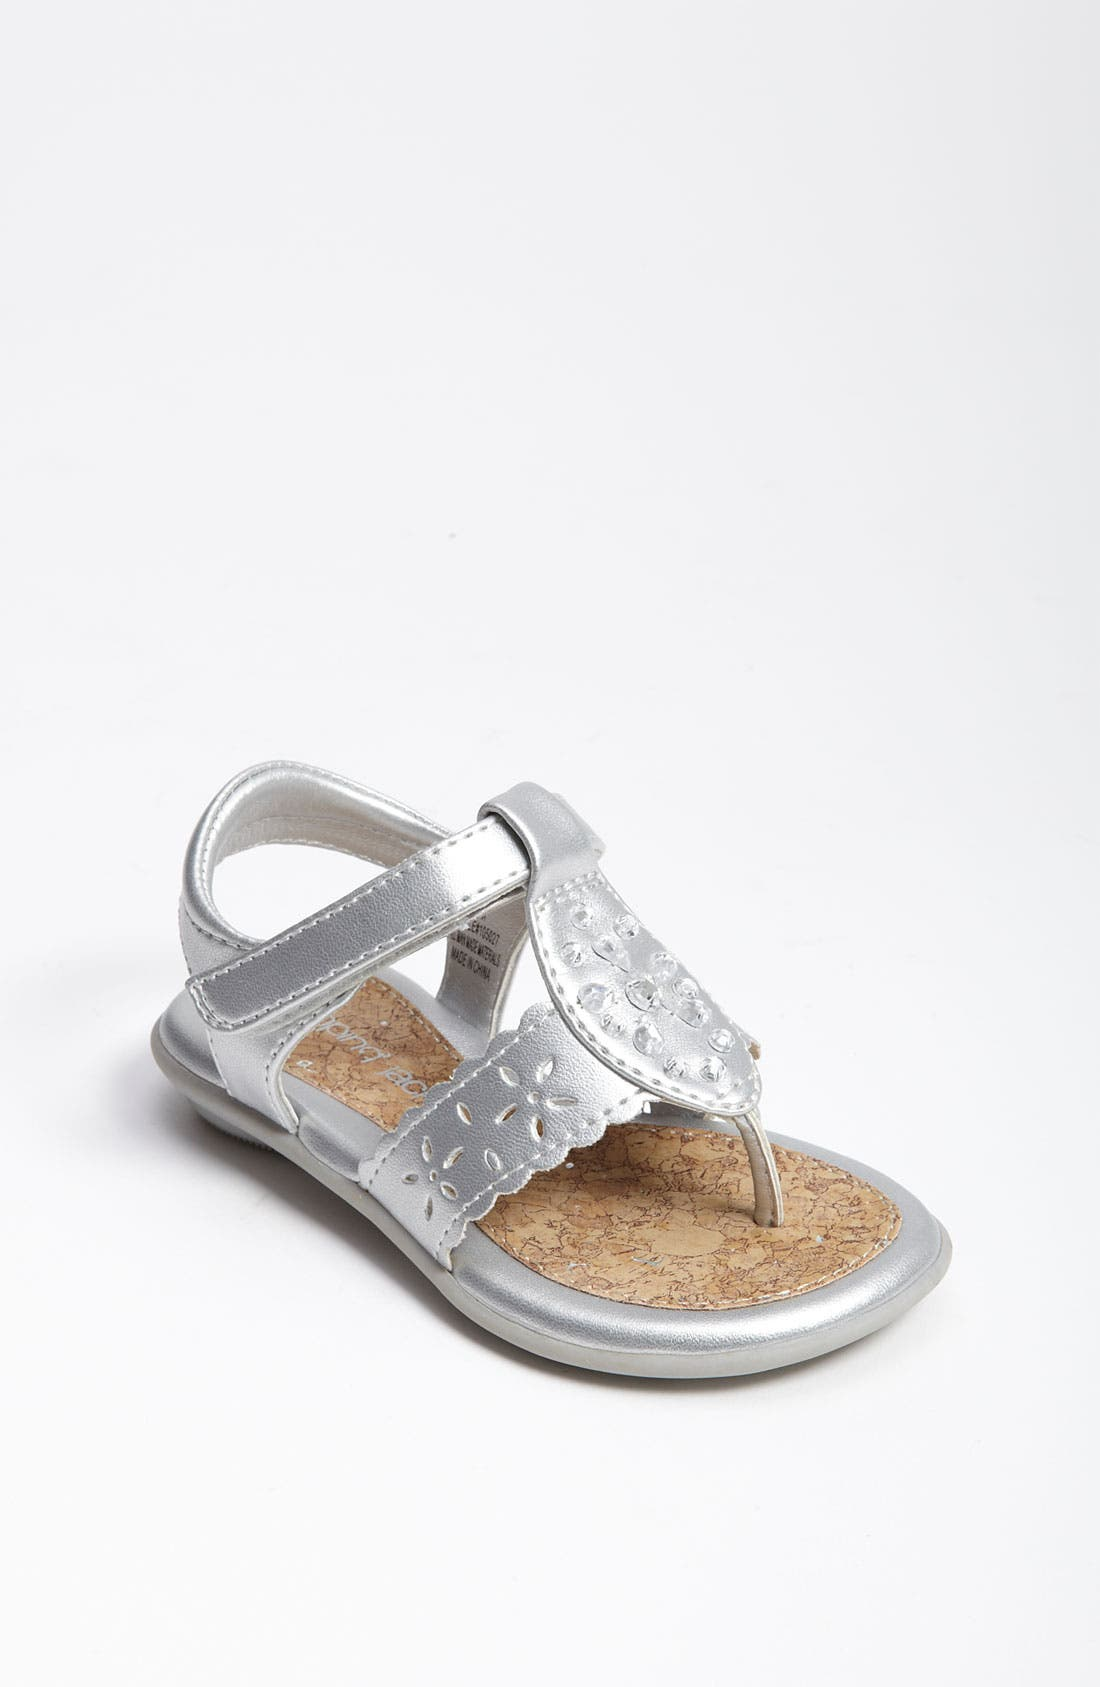 Alternate Image 1 Selected - Jumping Jacks 'Christy' Sandal (Walker, Toddler, Little Kid & Big Kid)